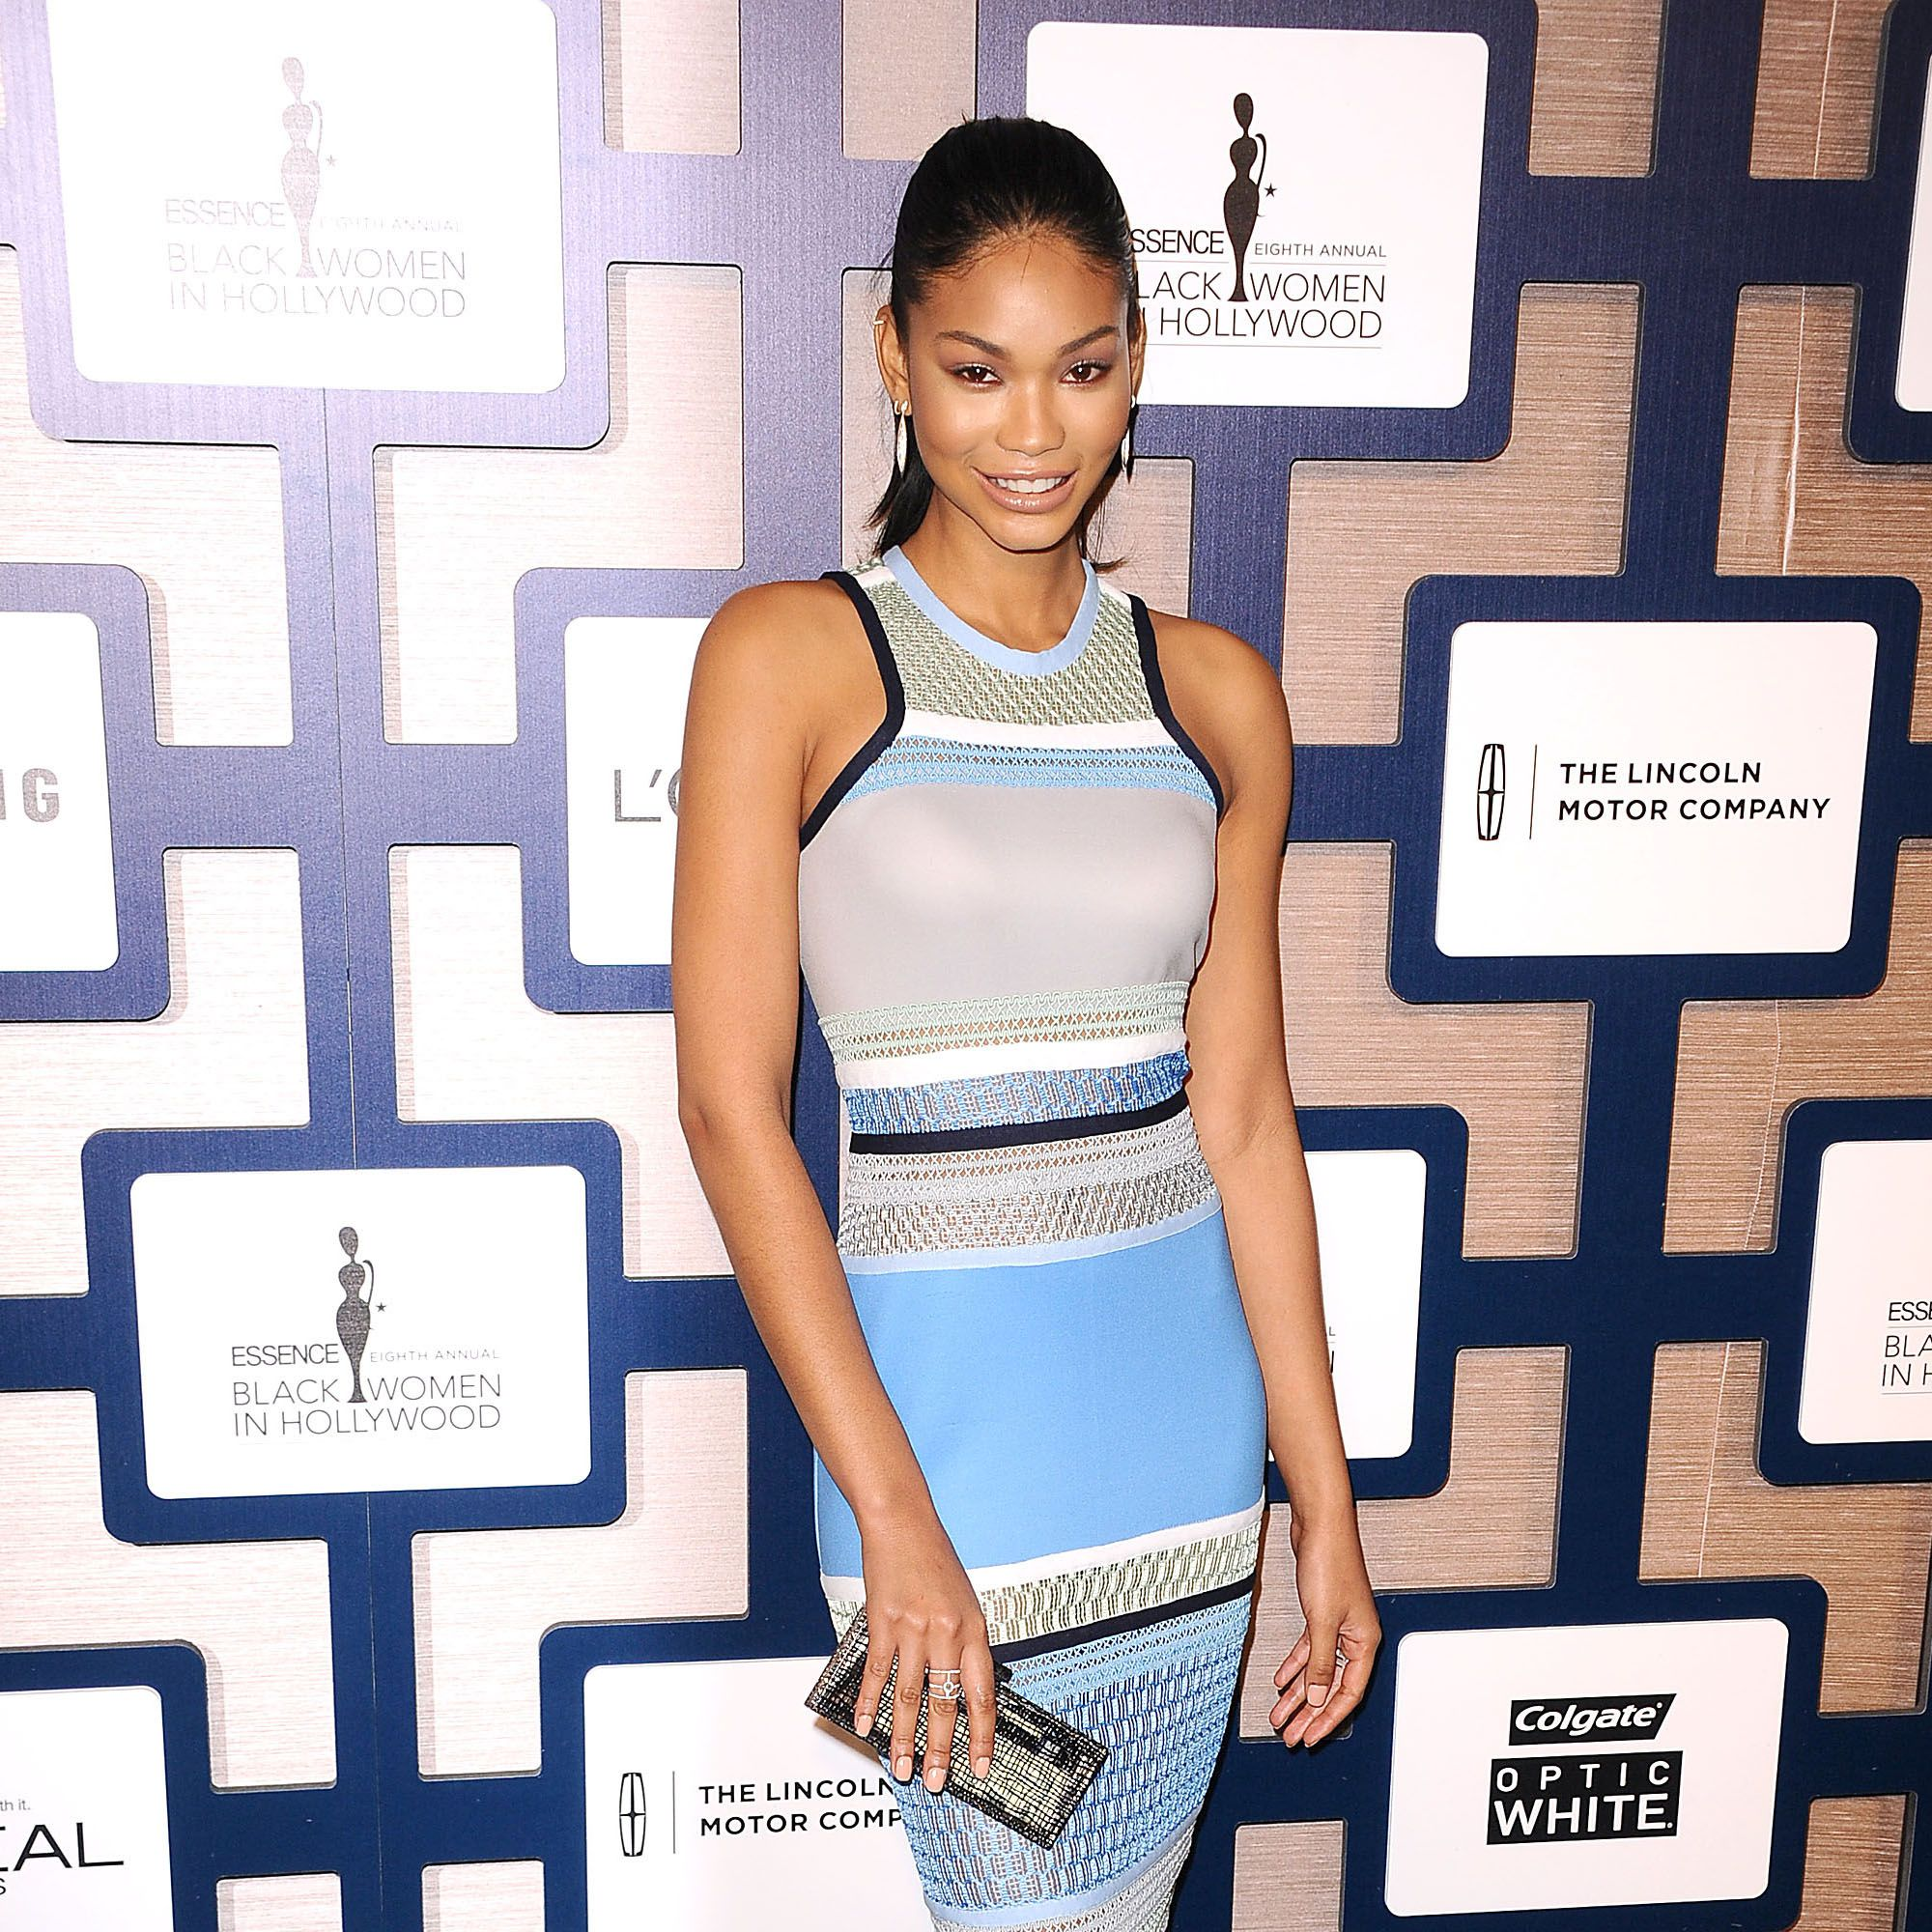 BEVERLY HILLS, CA - FEBRUARY 19:  Model Chanel Iman attends the 8th annual ESSENCE Black Women In Hollywood luncheon at the Beverly Wilshire Four Seasons Hotel on February 19, 2015 in Beverly Hills, California.  (Photo by Jason LaVeris/FilmMagic)